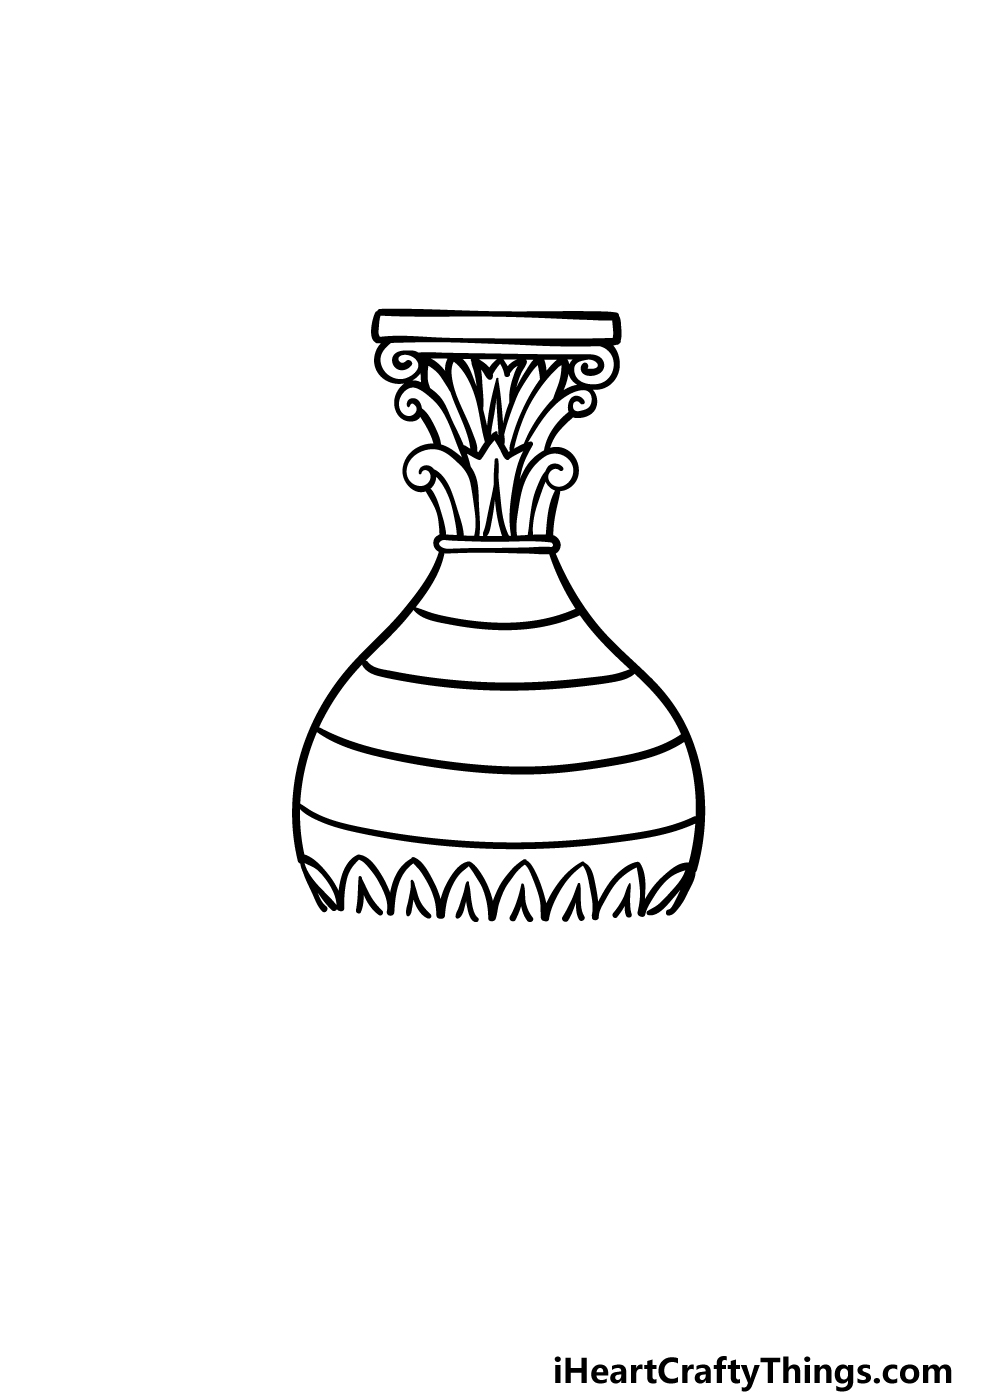 drawing a vase step 3